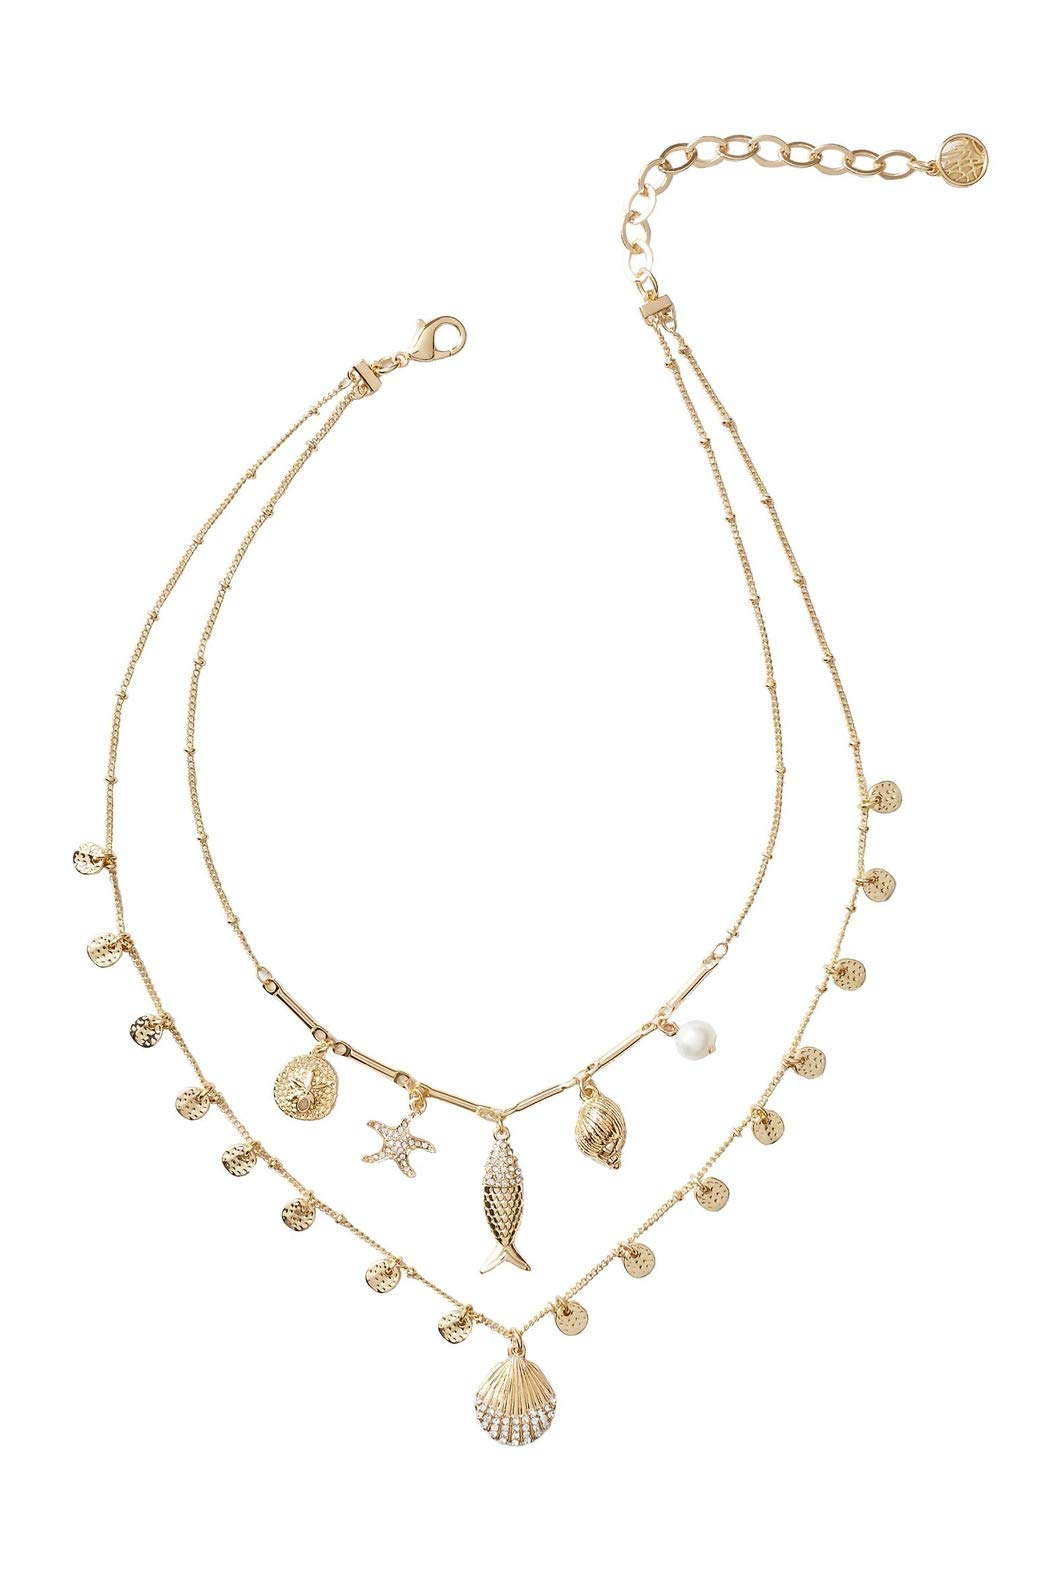 Lilly Pulitzer Sofishticated Necklace - Gold Strands